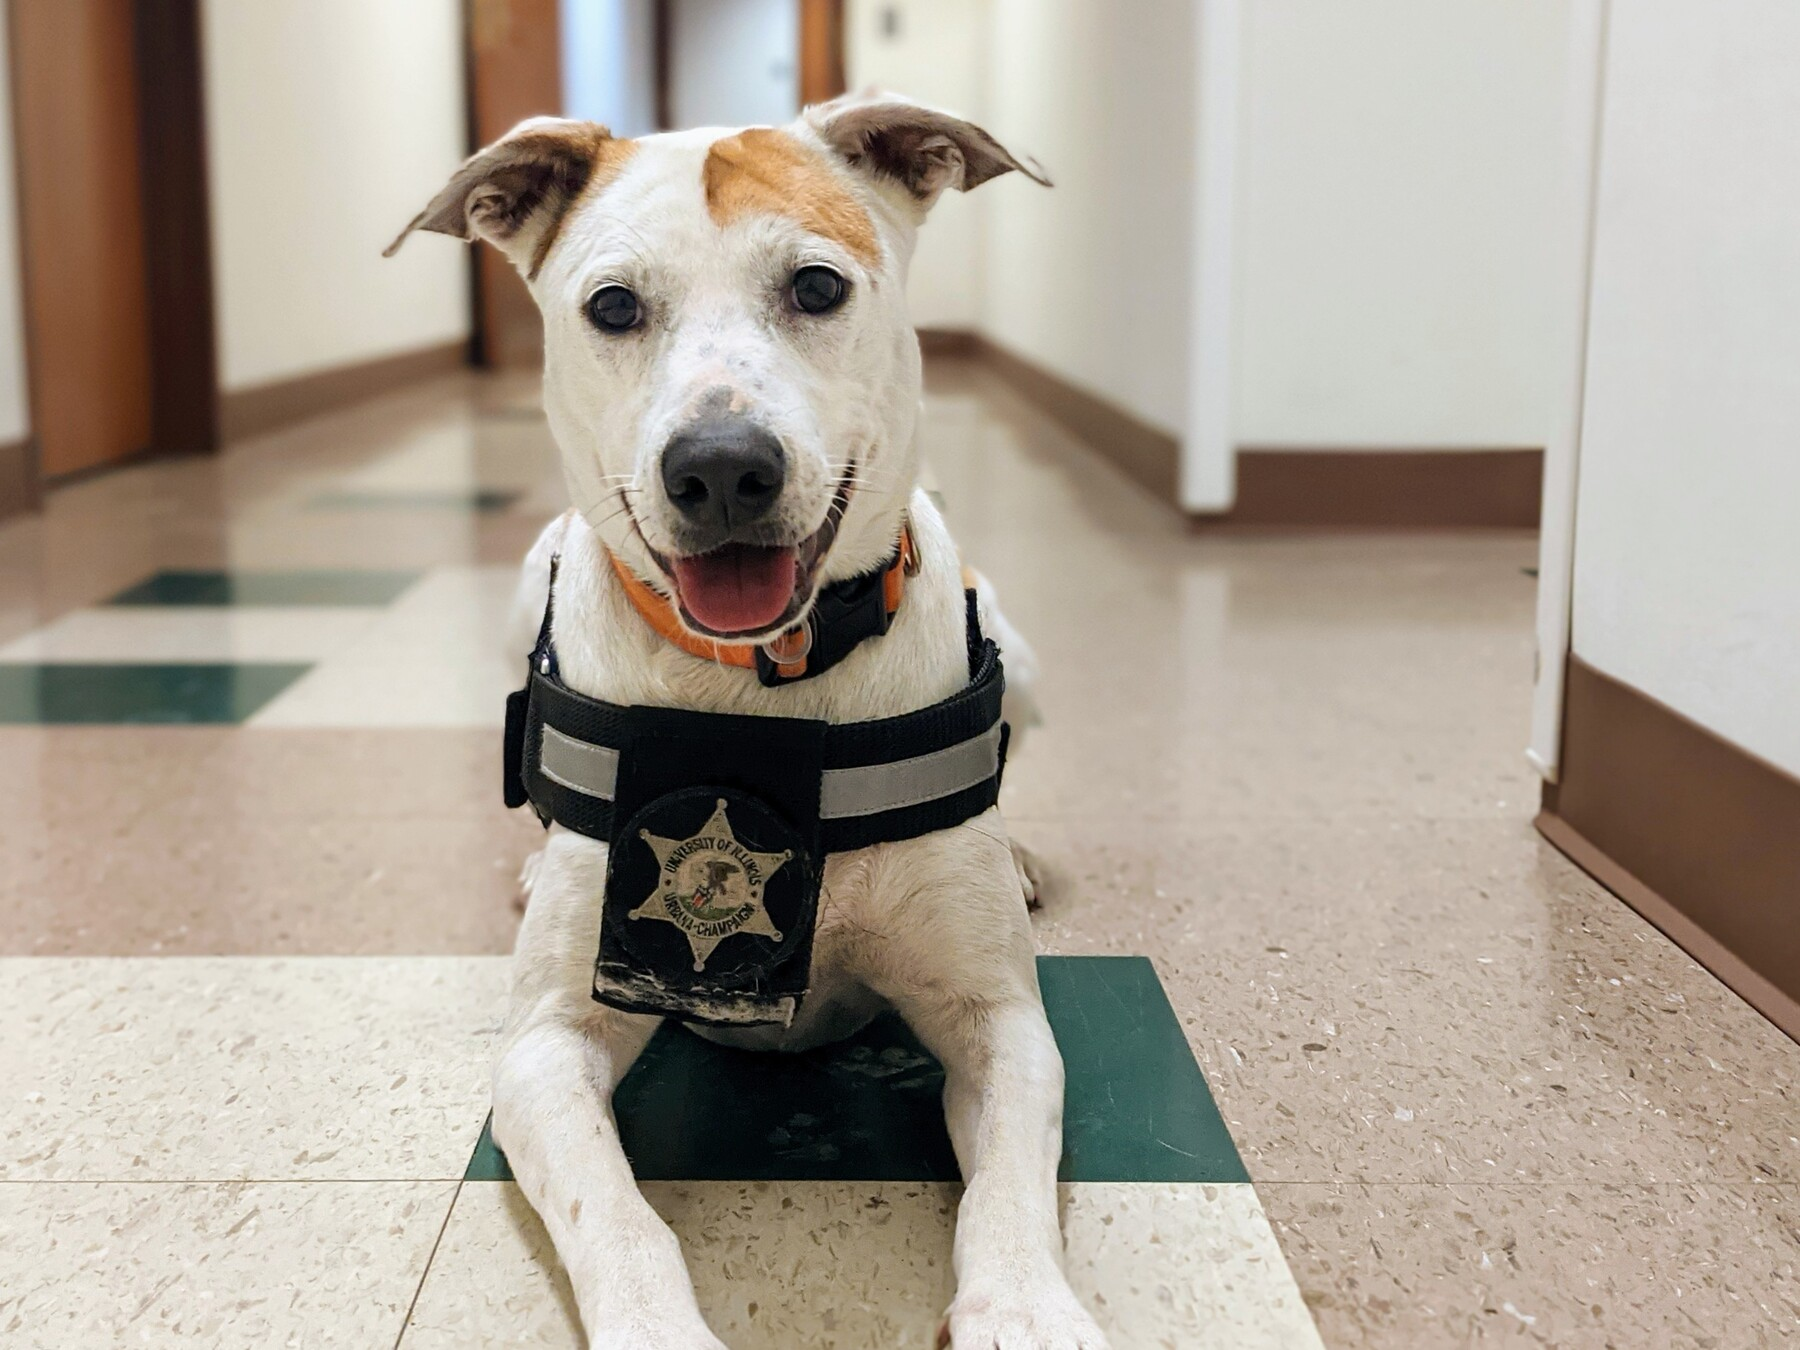 K9 Lollipop poses for a photo in a UIPD hallway.